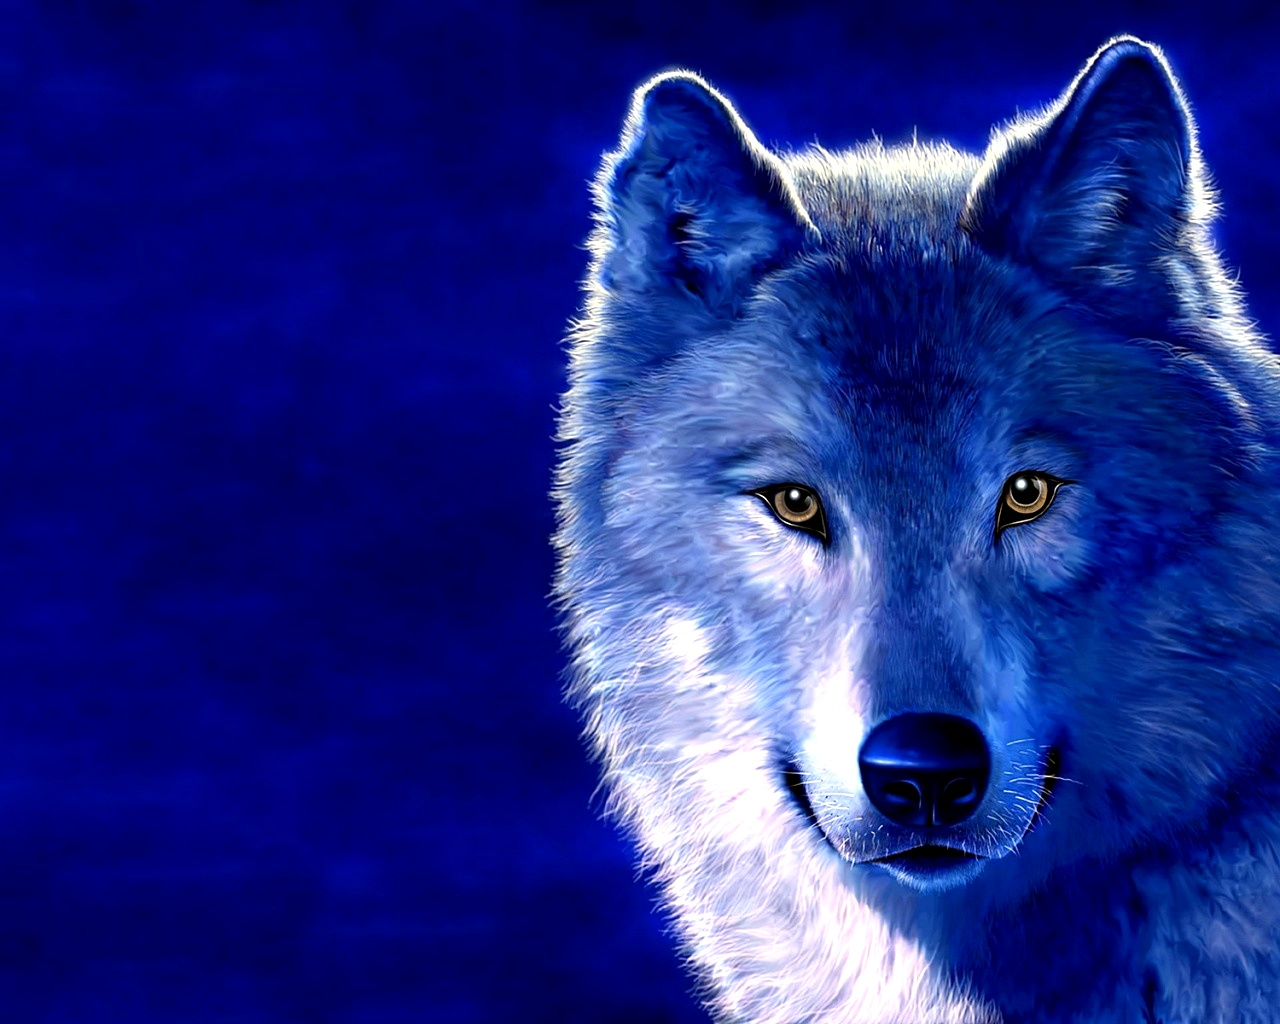 Desktop Best Quality Wallpapers here you can see 3D Wolf HD Desktop 1280x1024